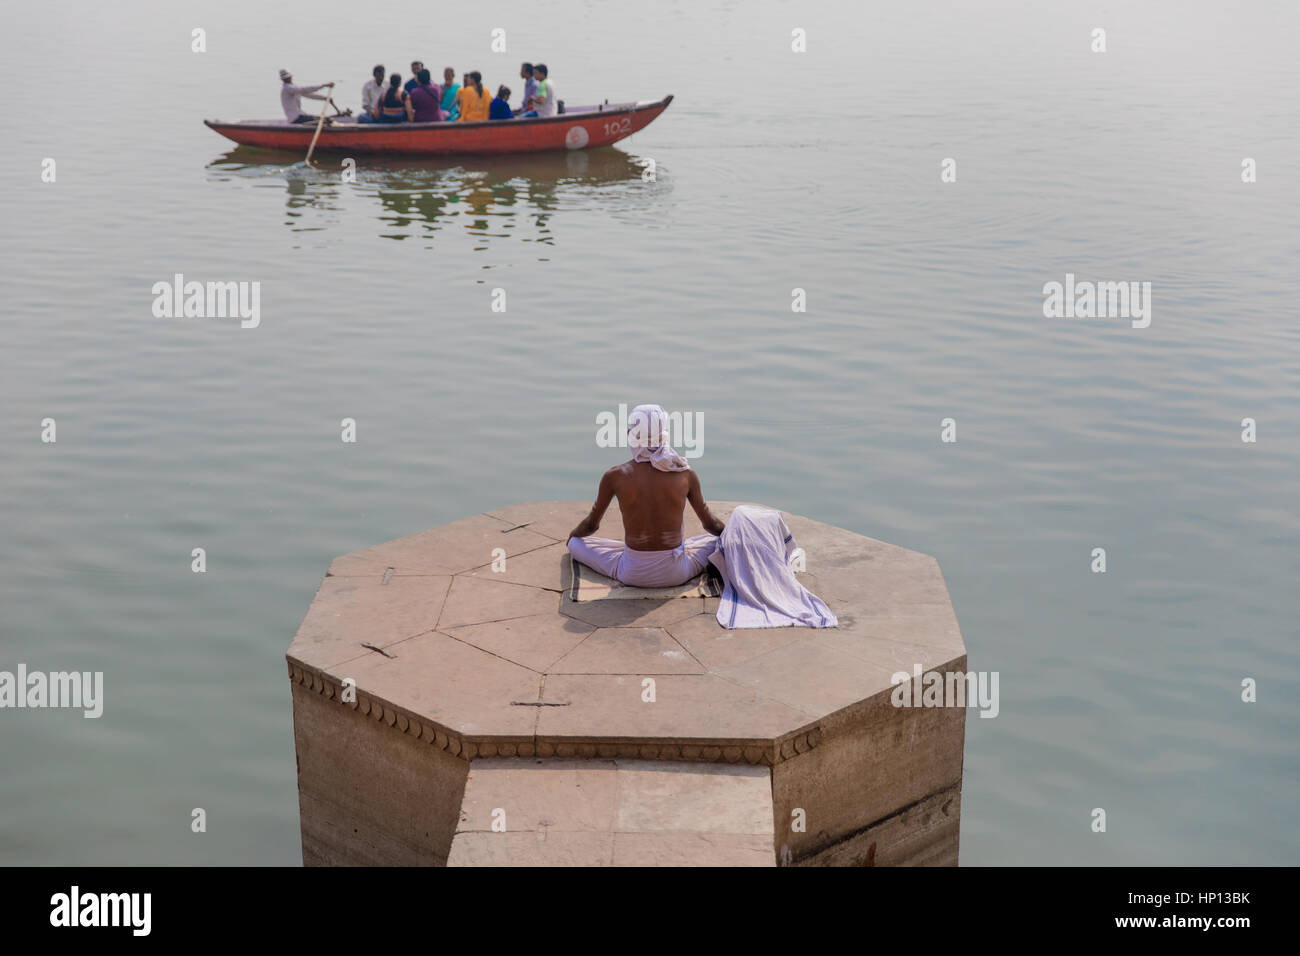 A man meditates on the Ganges River in Varanasi, one of India's holiest cities. Varanasi is a popular destination - Stock Image